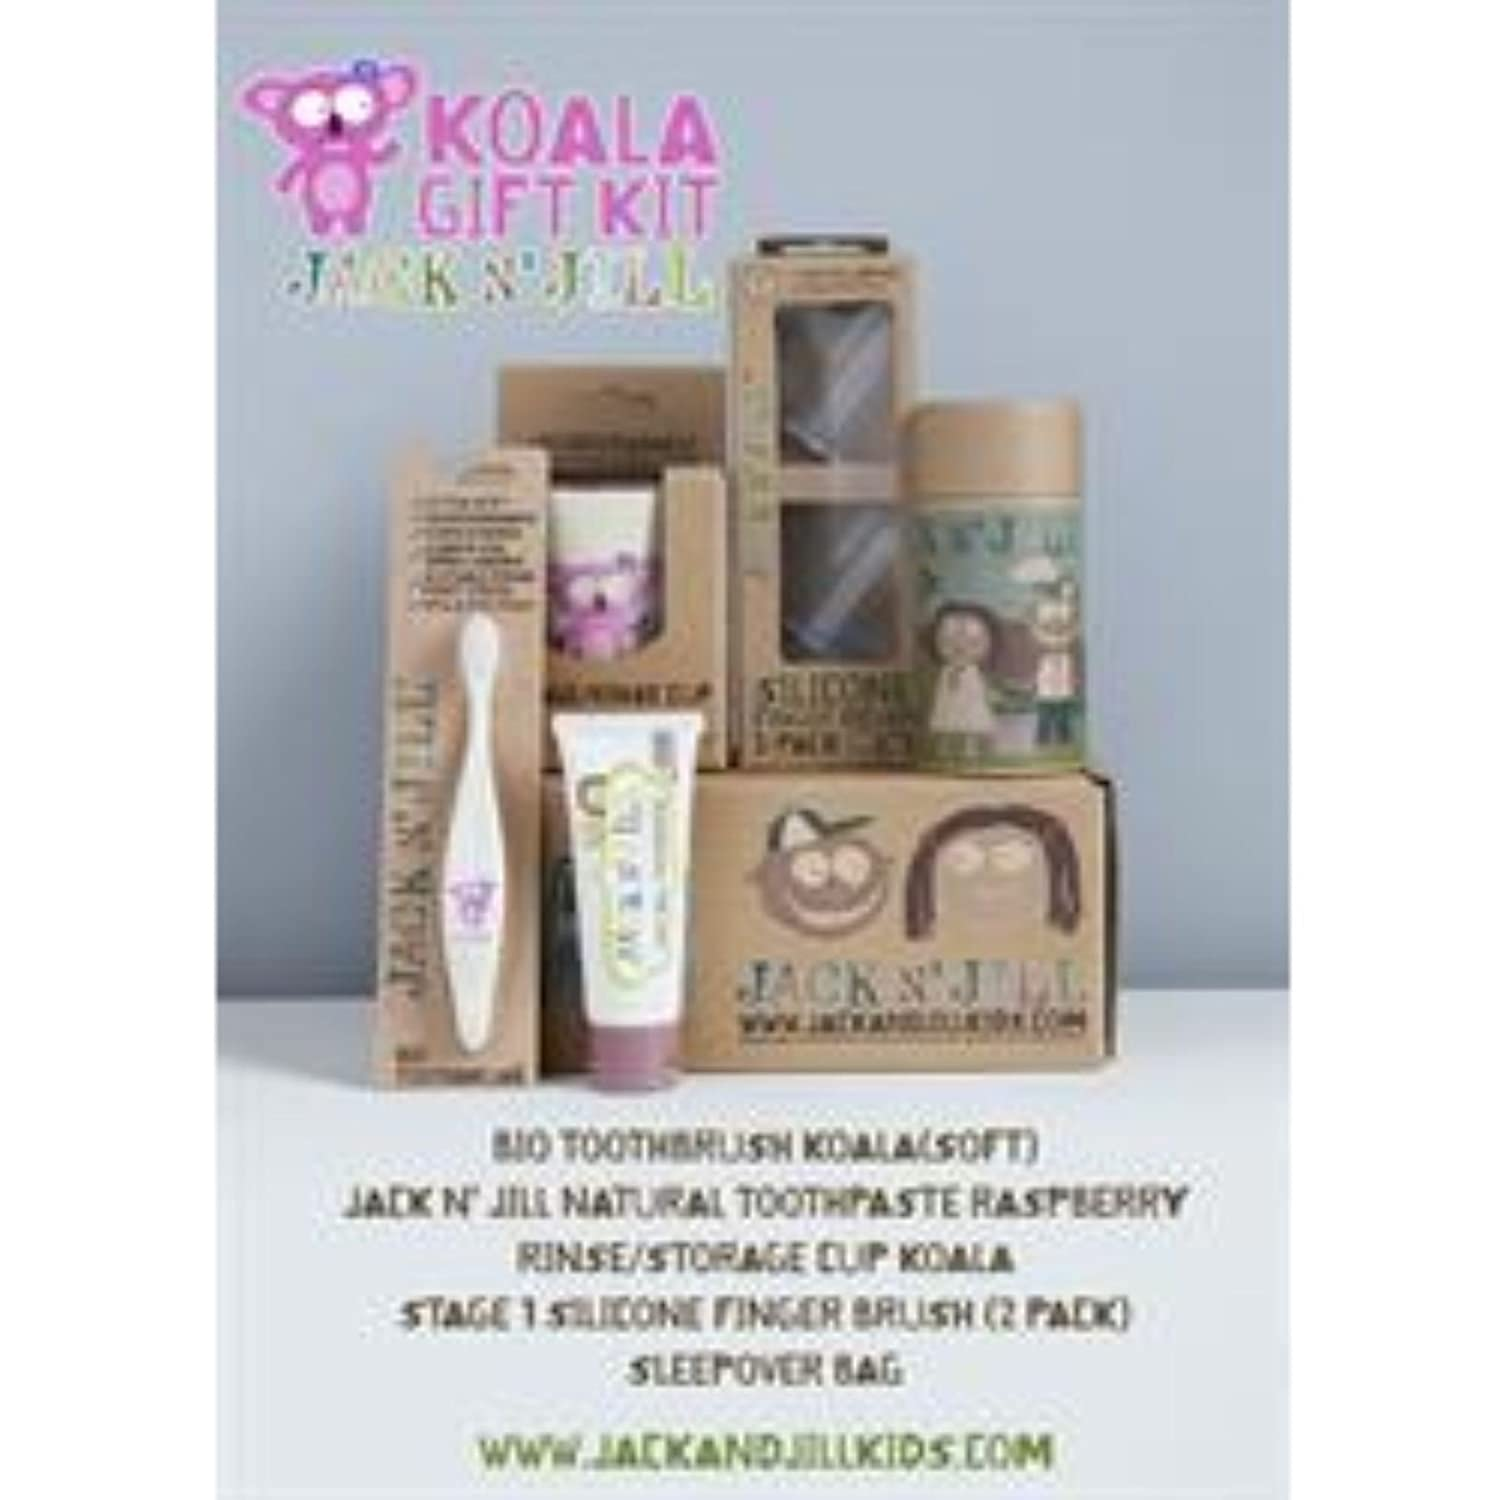 Amazon.com: Jack N Jill Koala Gift Kit: Beauty